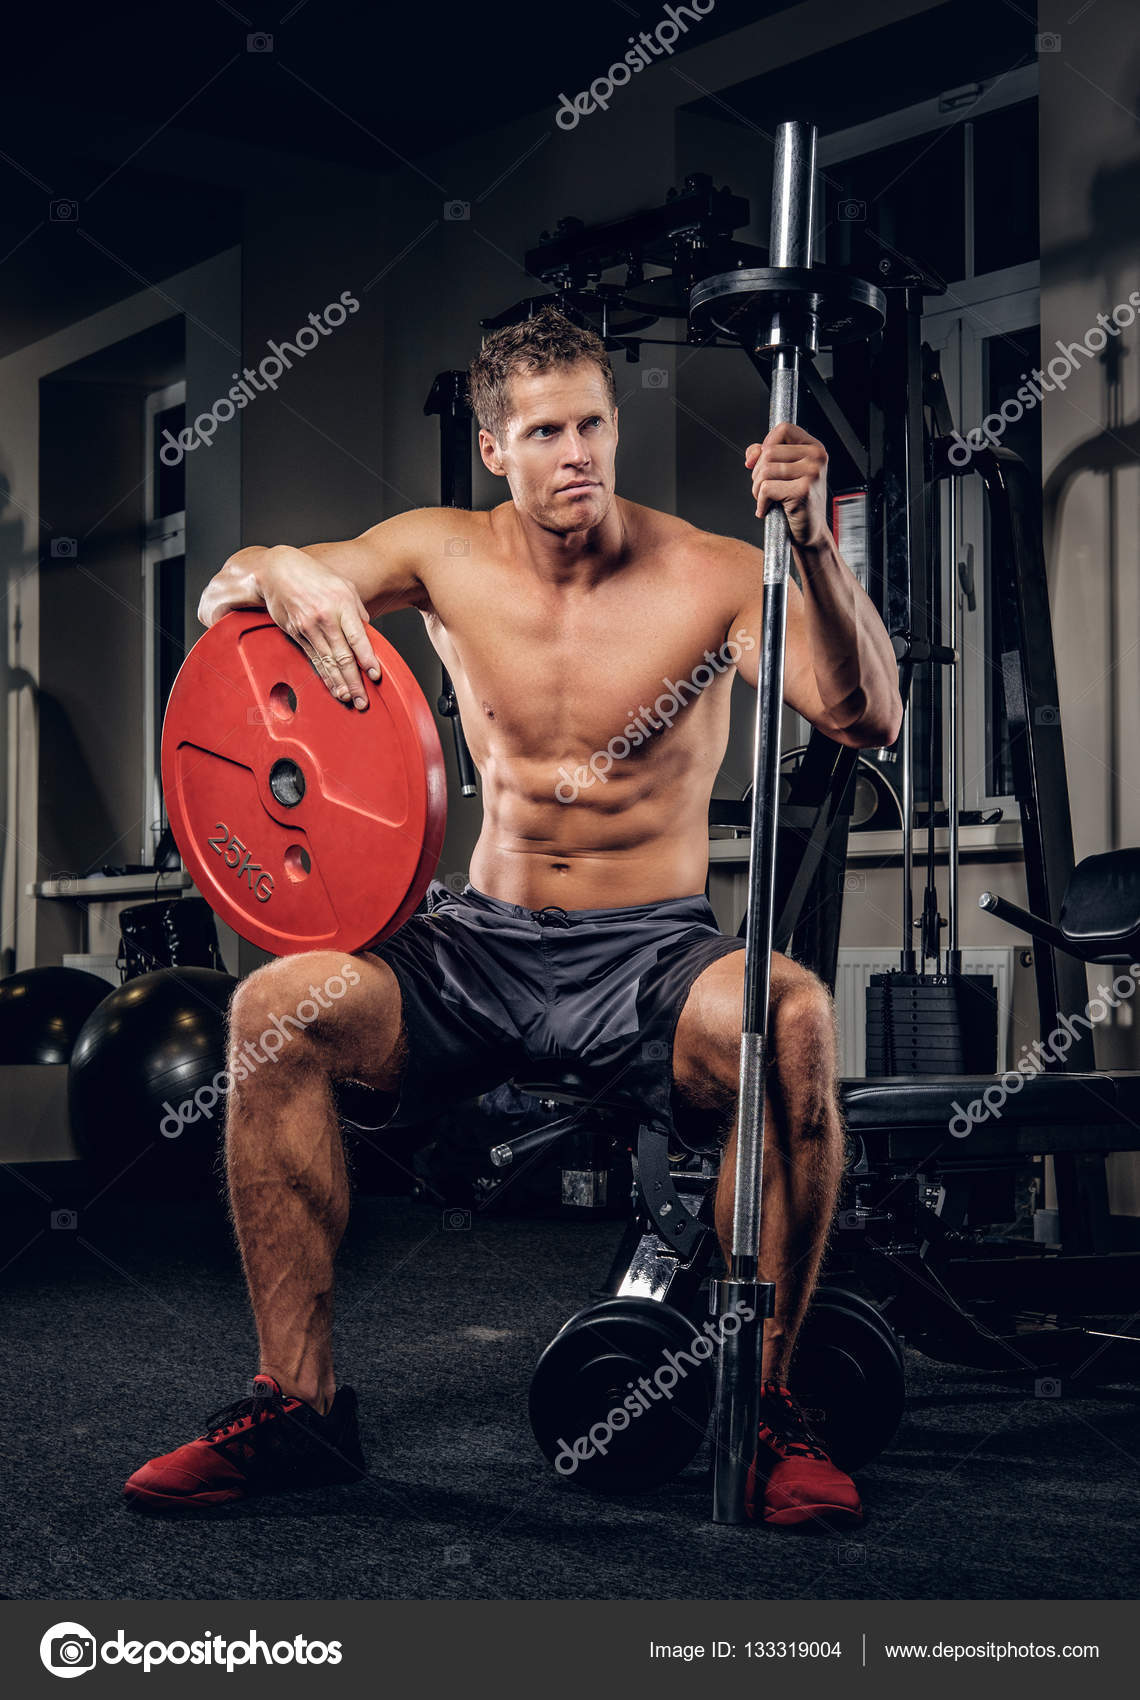 Muscular man holding barbell weight — Stock Photo © fxquadro #133319004